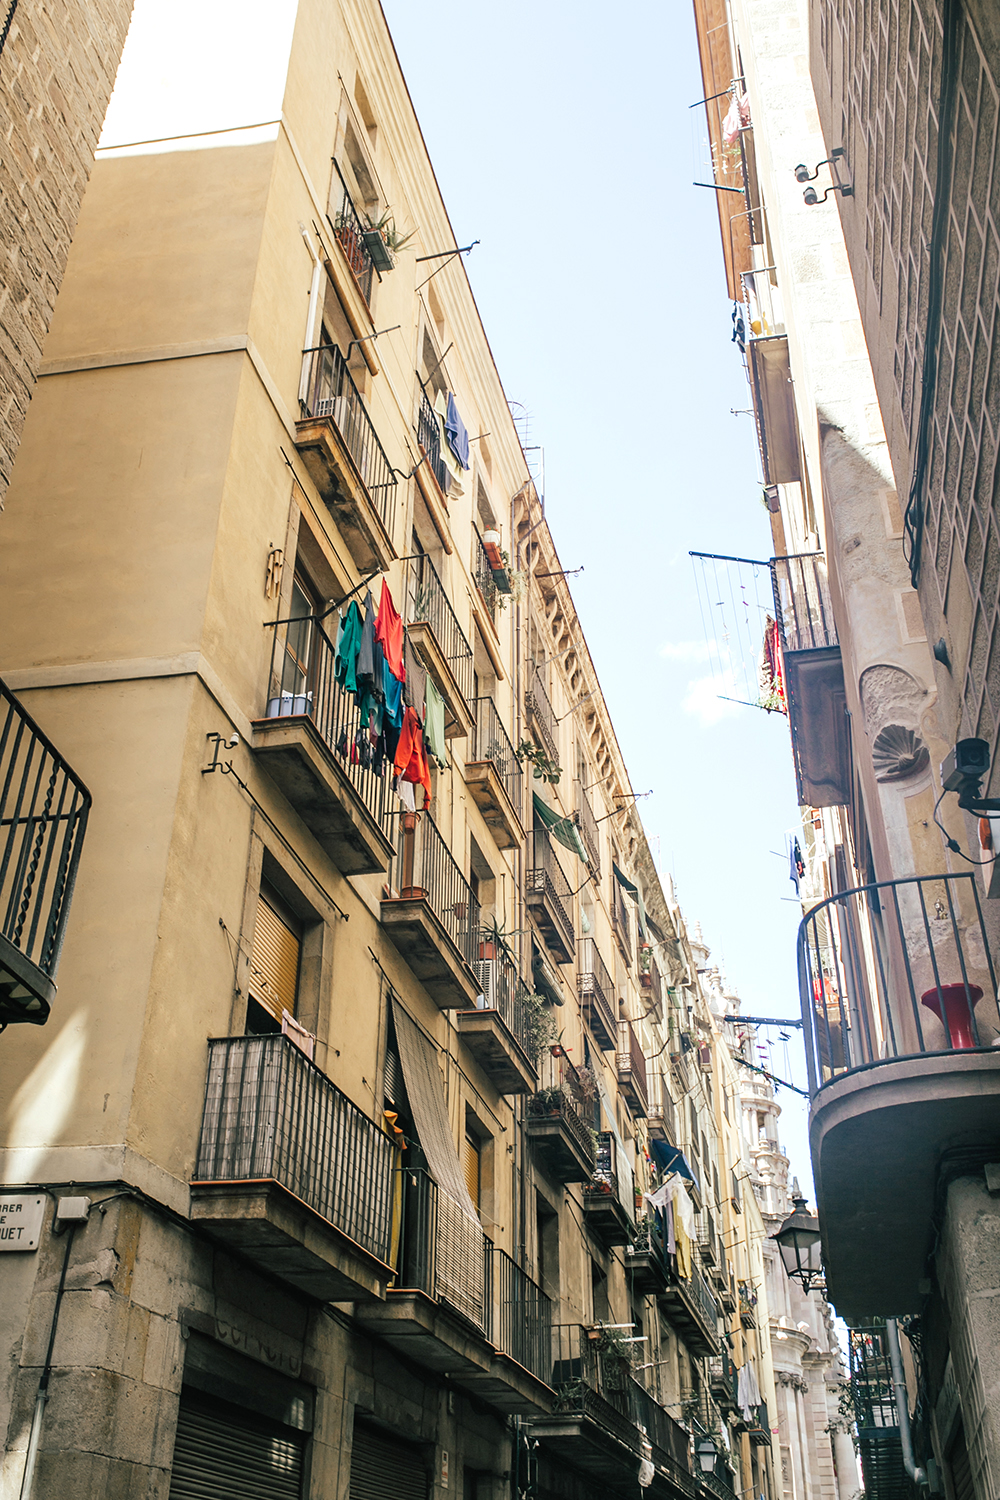 livvyland-blog-olivia-watson-travel-fashion-blogger-barcelona-spain-las-ramblas-architecture-buildings